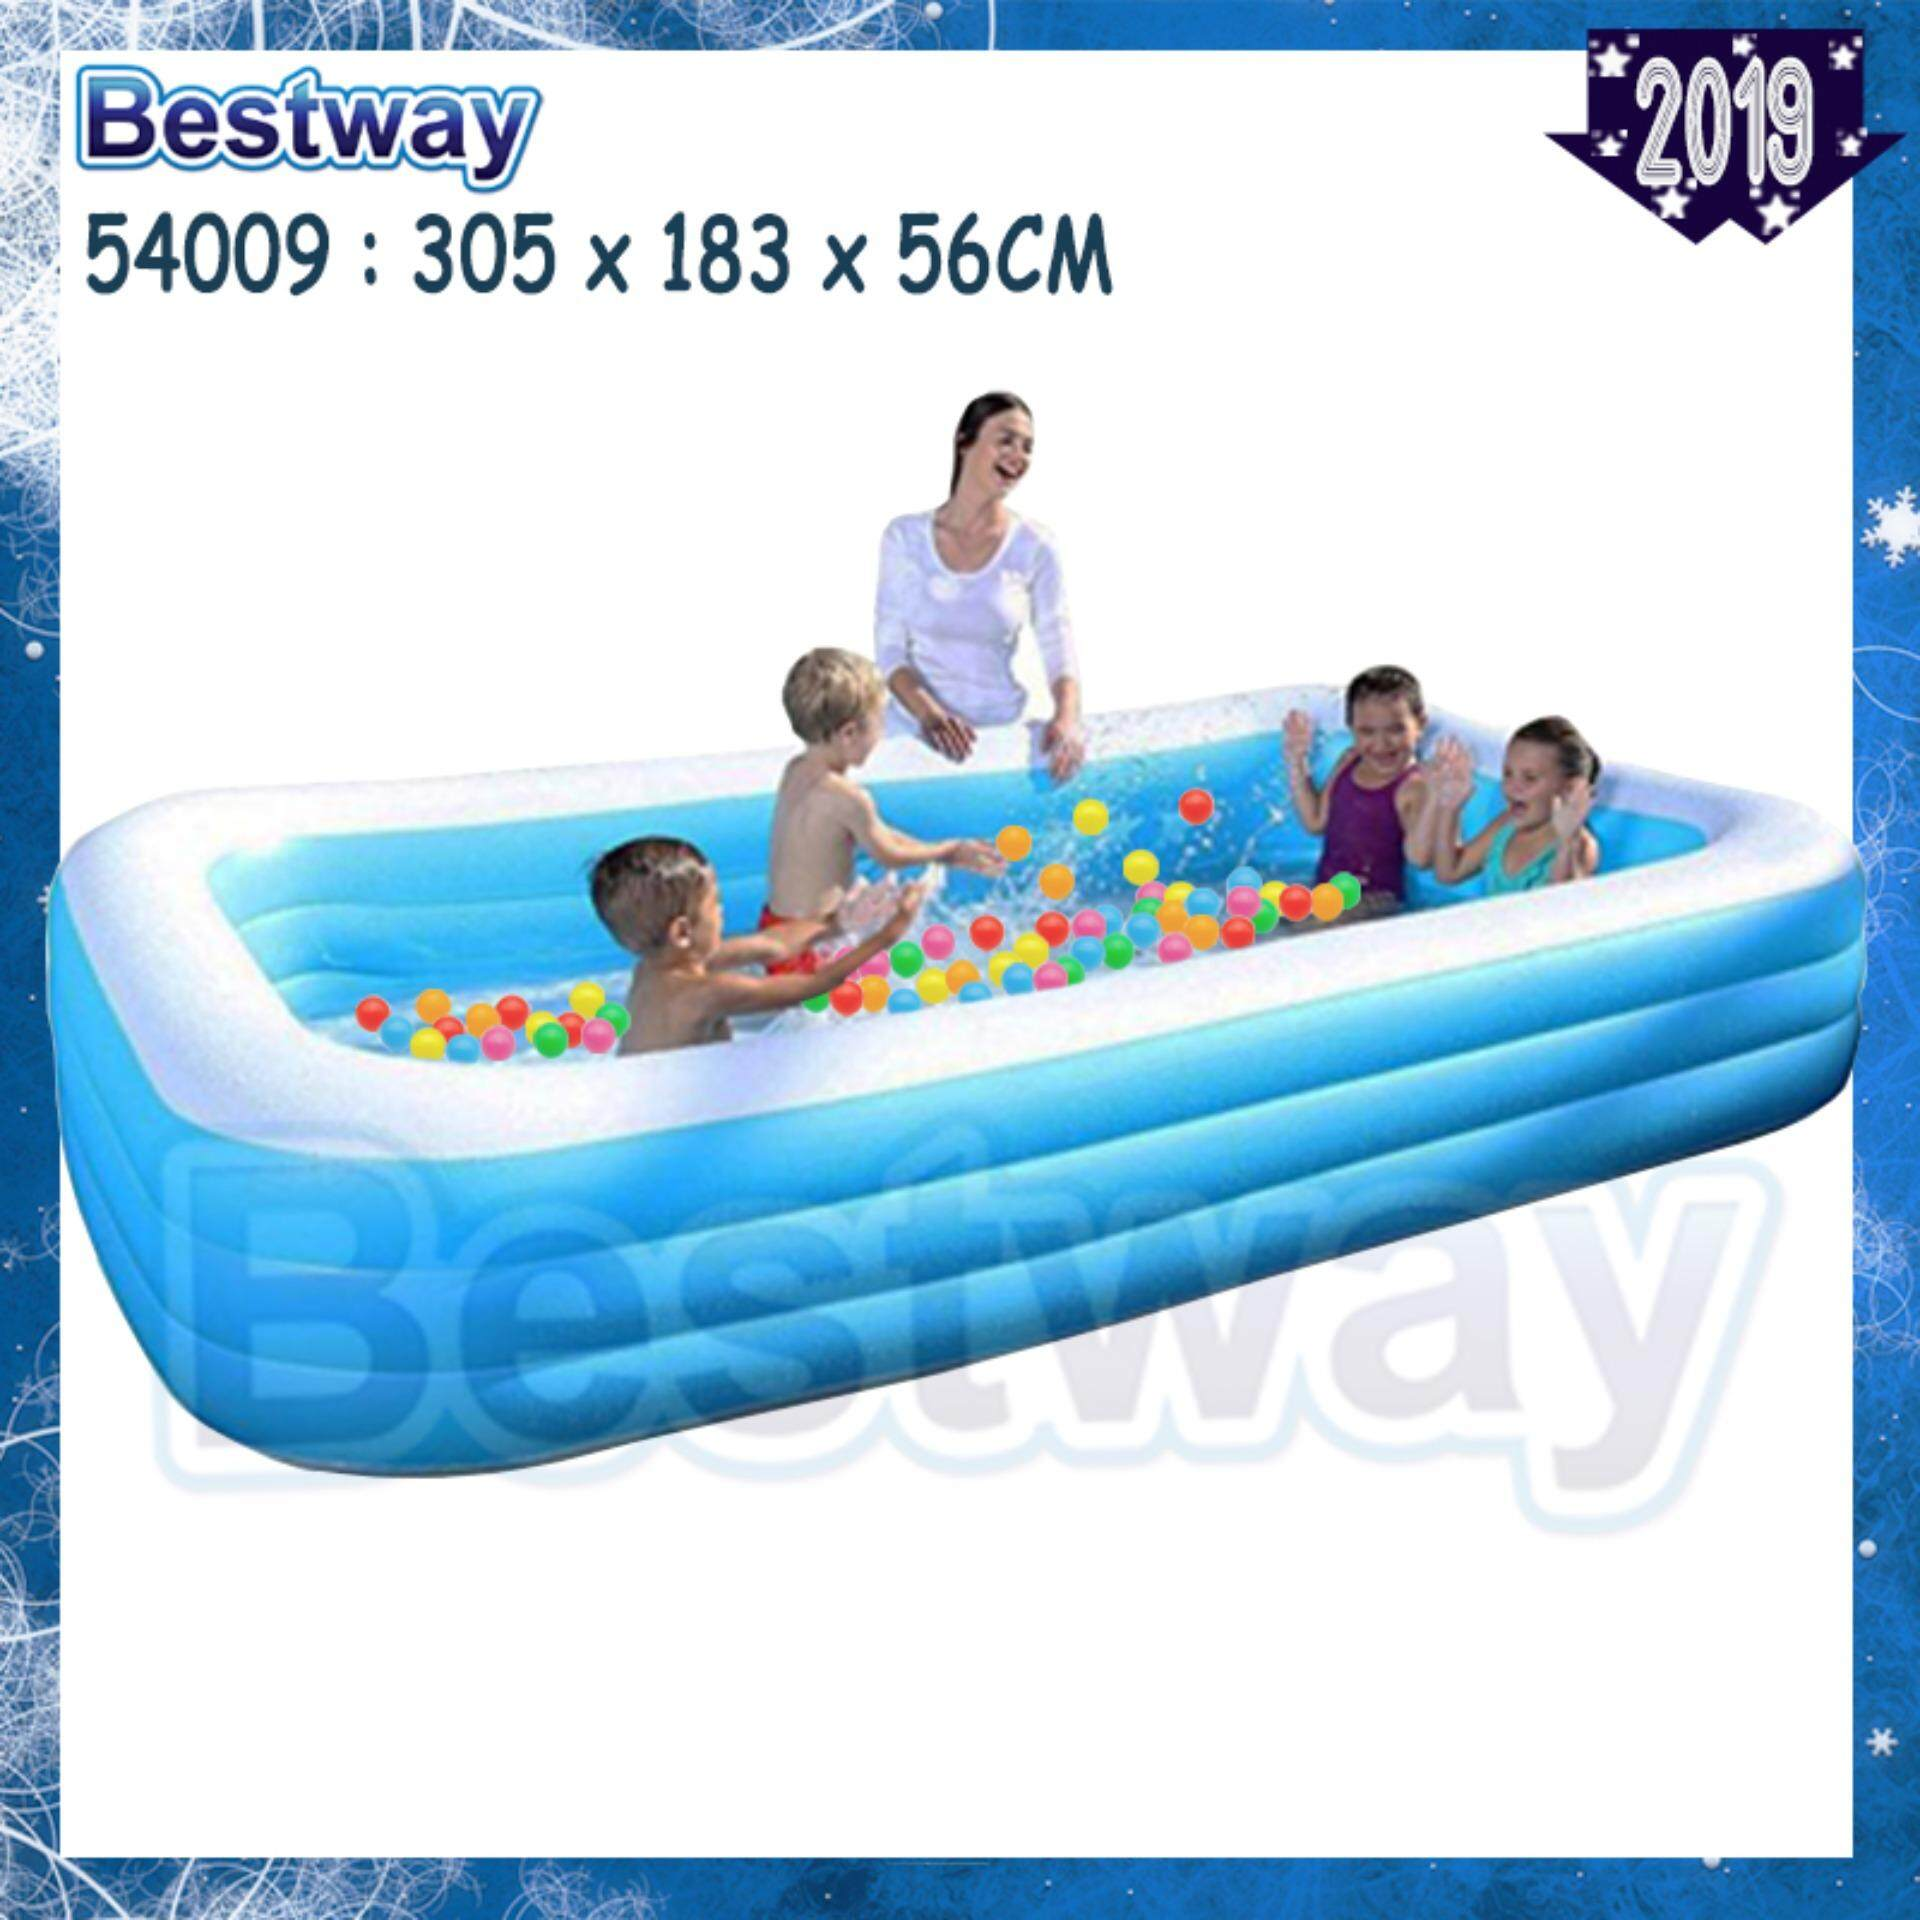 Intex Vs Bestway Review Bestway 3 05 Meter 54009 305cm X 183cm X 56cm Extra Large 3 Layers Inflatable Family Swimming Pools For Kid Or Family Np170 Toys For Boys